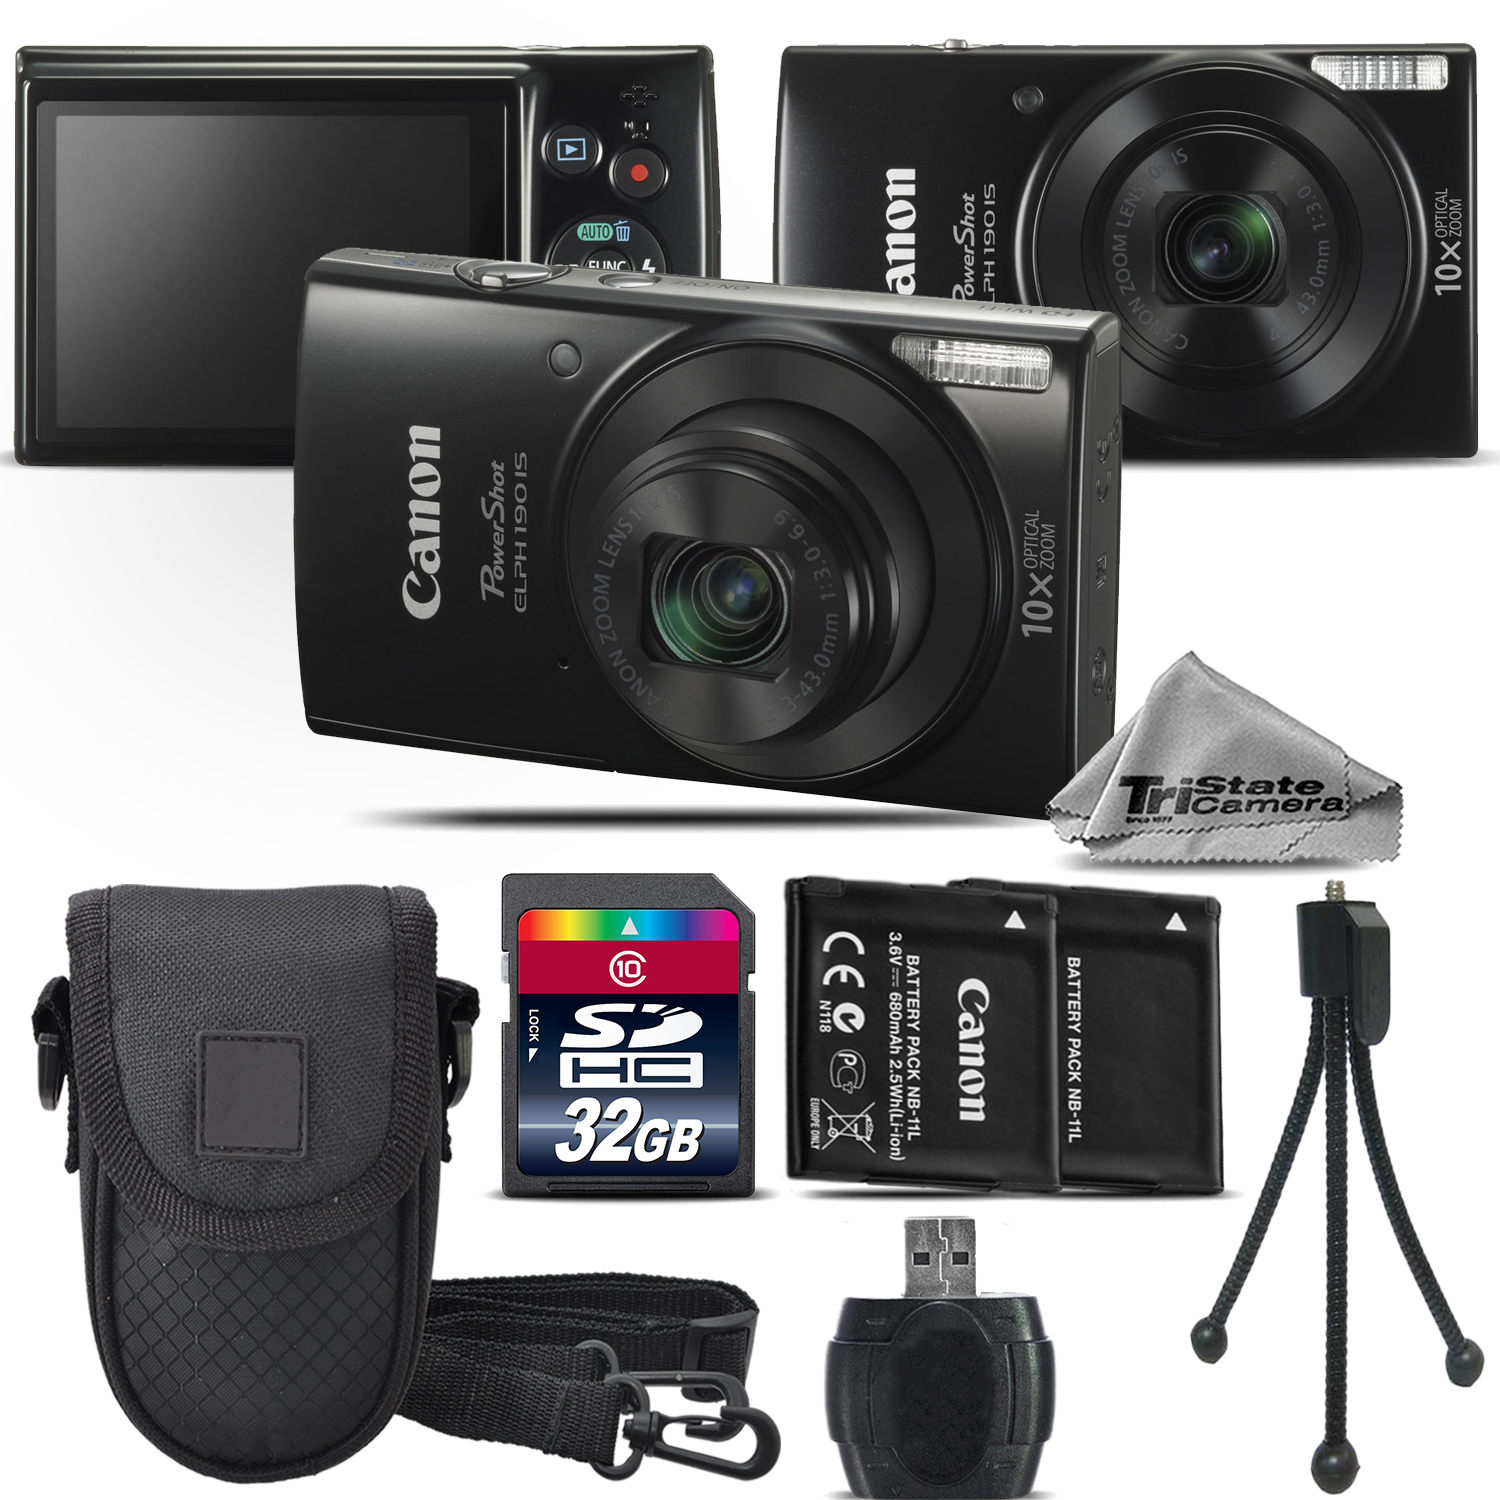 PowerShot ELPH 190 Digital Camera Black WiFi 10X Optical Zoom - 32GB Kit *FREE SHIPPING*